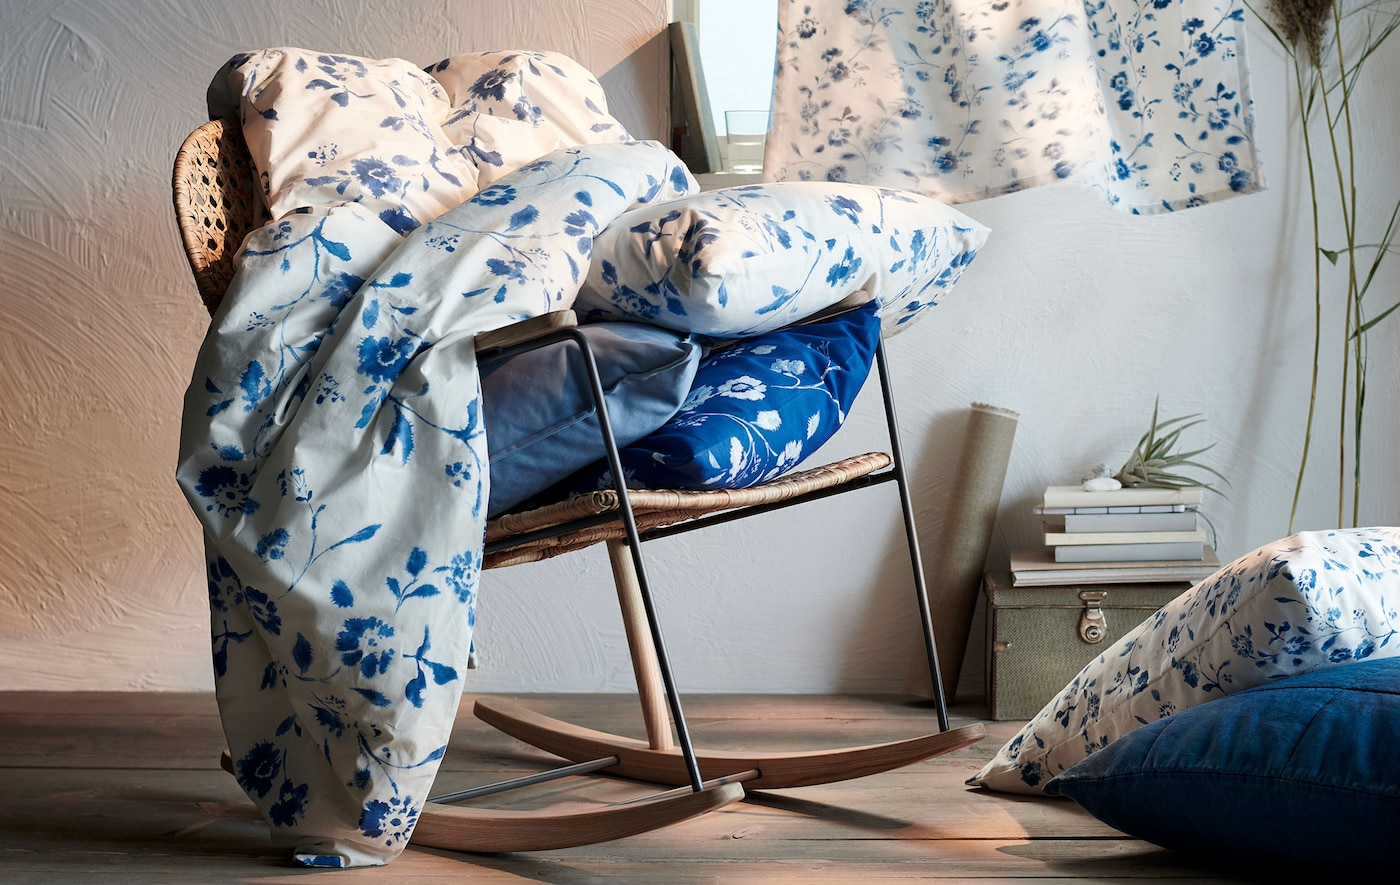 Rustic Coasts Trend: Sea Inspired Blue Hues And Natural Materials